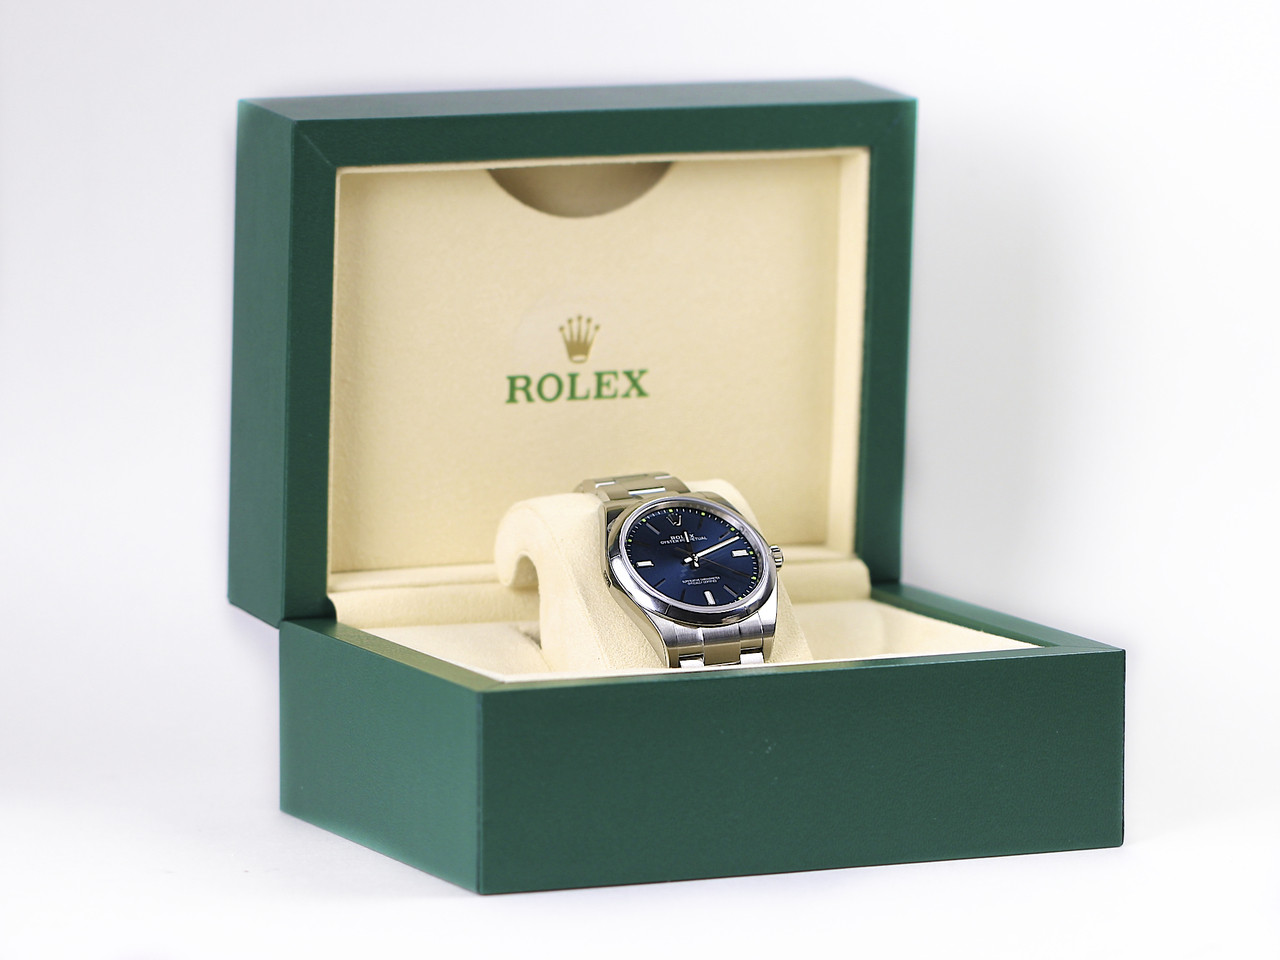 New and Complete - Rolex Watch - Oyster Perpetual 39 Blue 114300 - New for sale online www.Legendoftime.com and in store Legend of Time - Chicago Watch Center